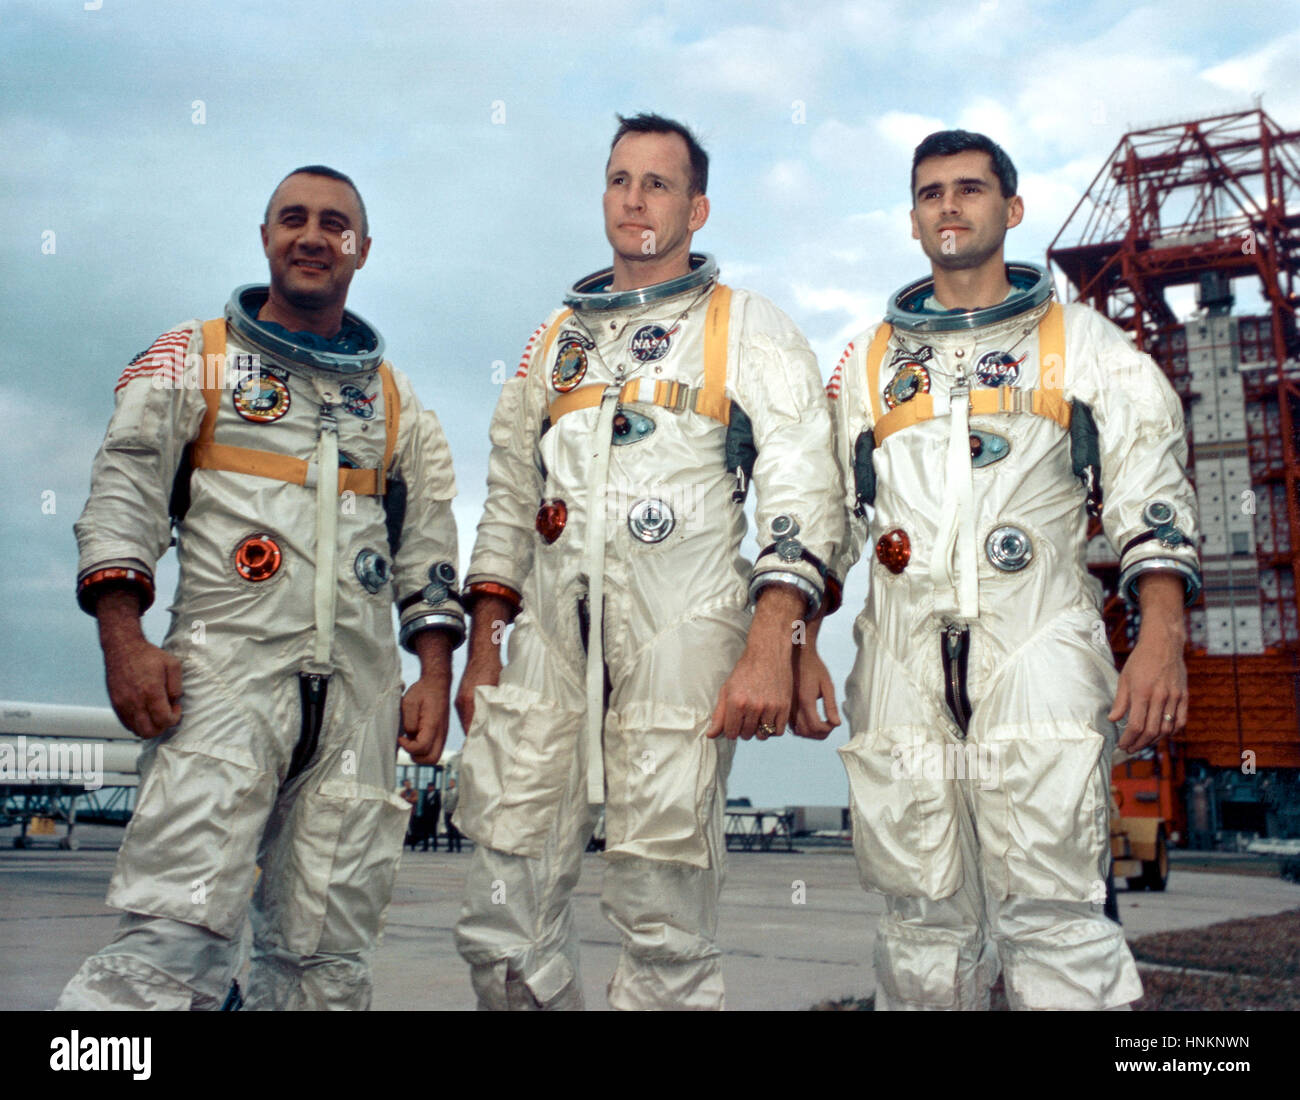 Astronauts, from the left, Gus Grissom, Ed White II and Roger Chaffee stand near Cape Kennedy's Launch Complex 34 Stock Photo